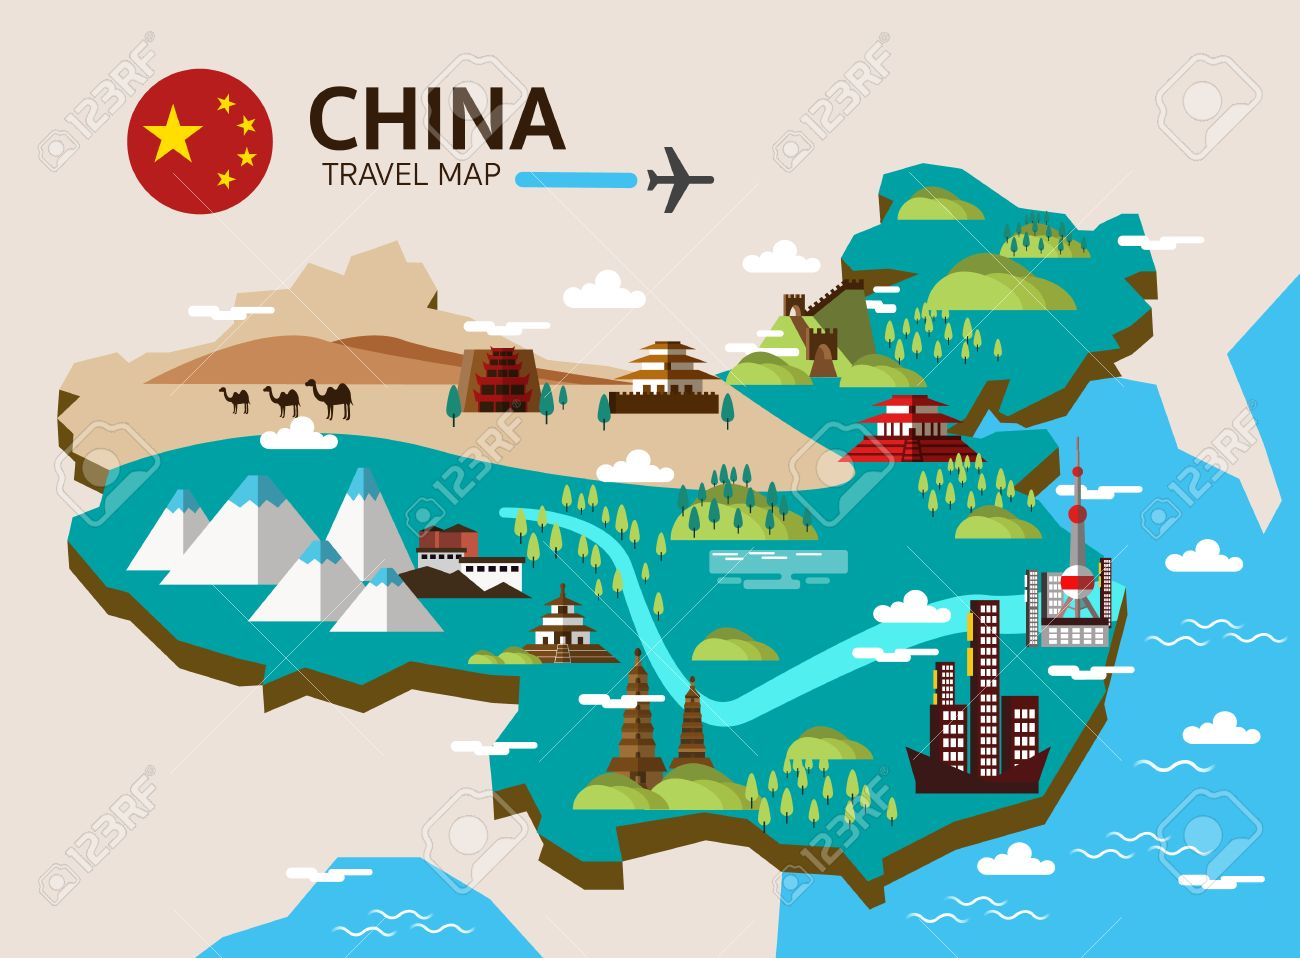 China landmark and travel map flat design elements and icons china landmark and travel map flat design elements and icons vector illustration stock vector gumiabroncs Choice Image